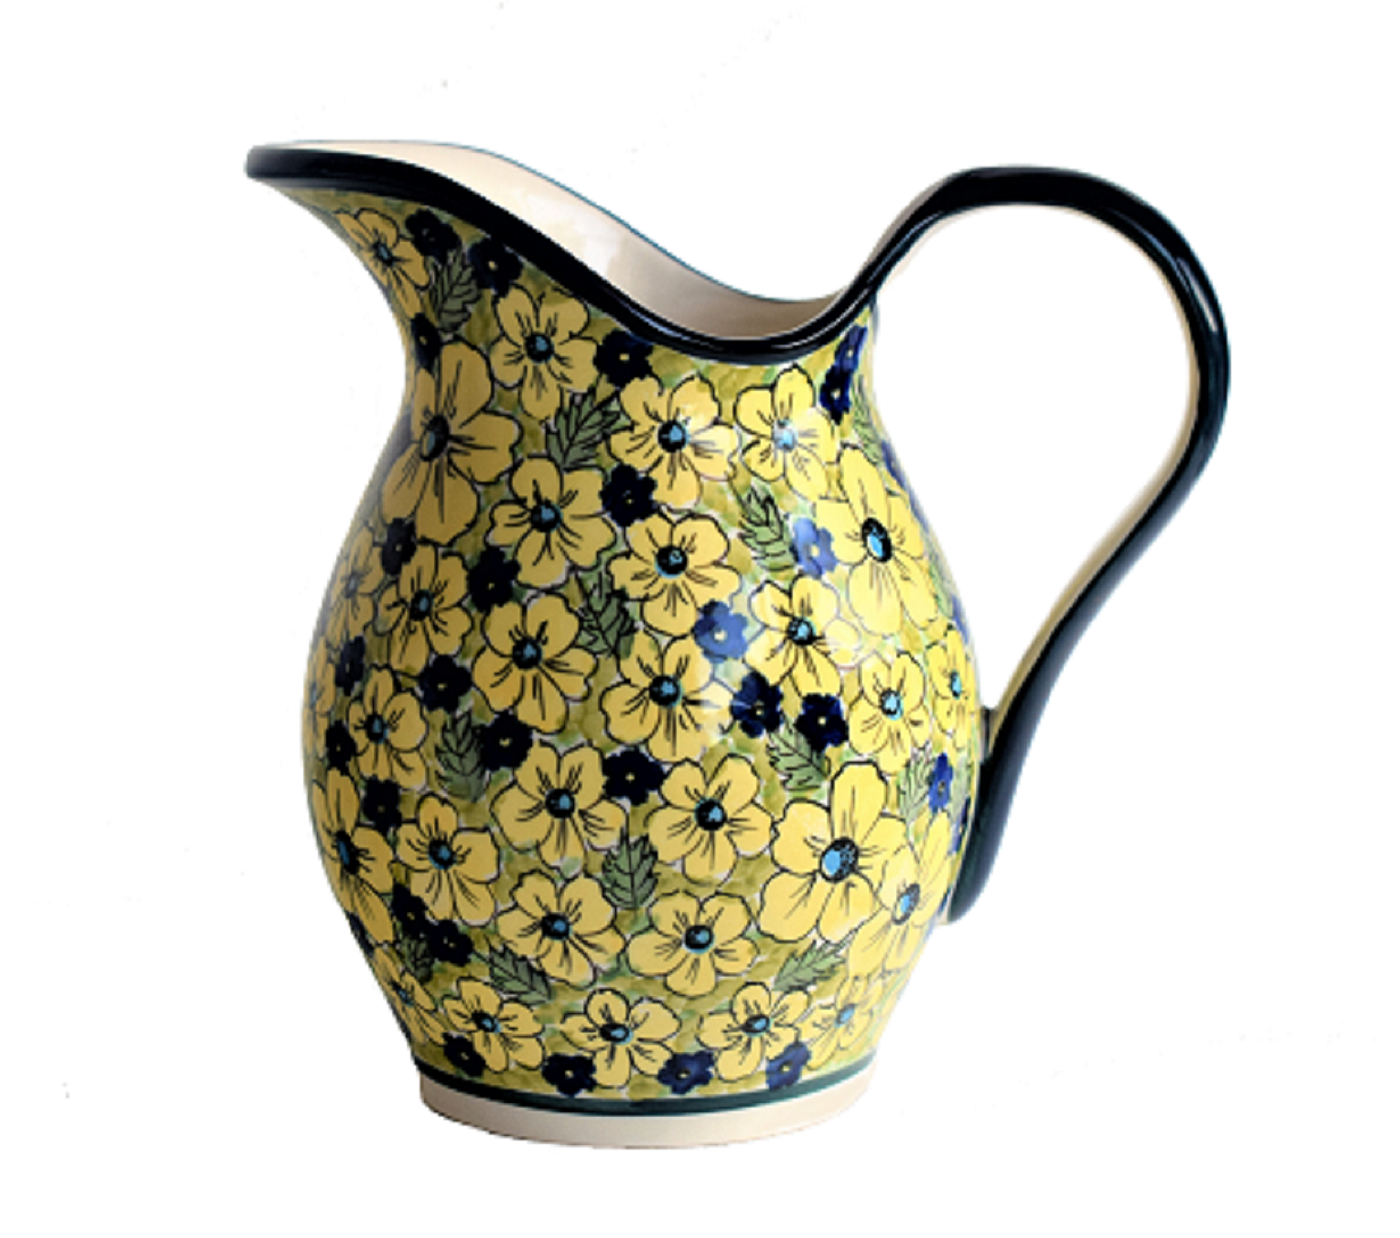 Pottery Avenue 2-Quart Stoneware Pitcher - 1160-346AR Blue Citrine